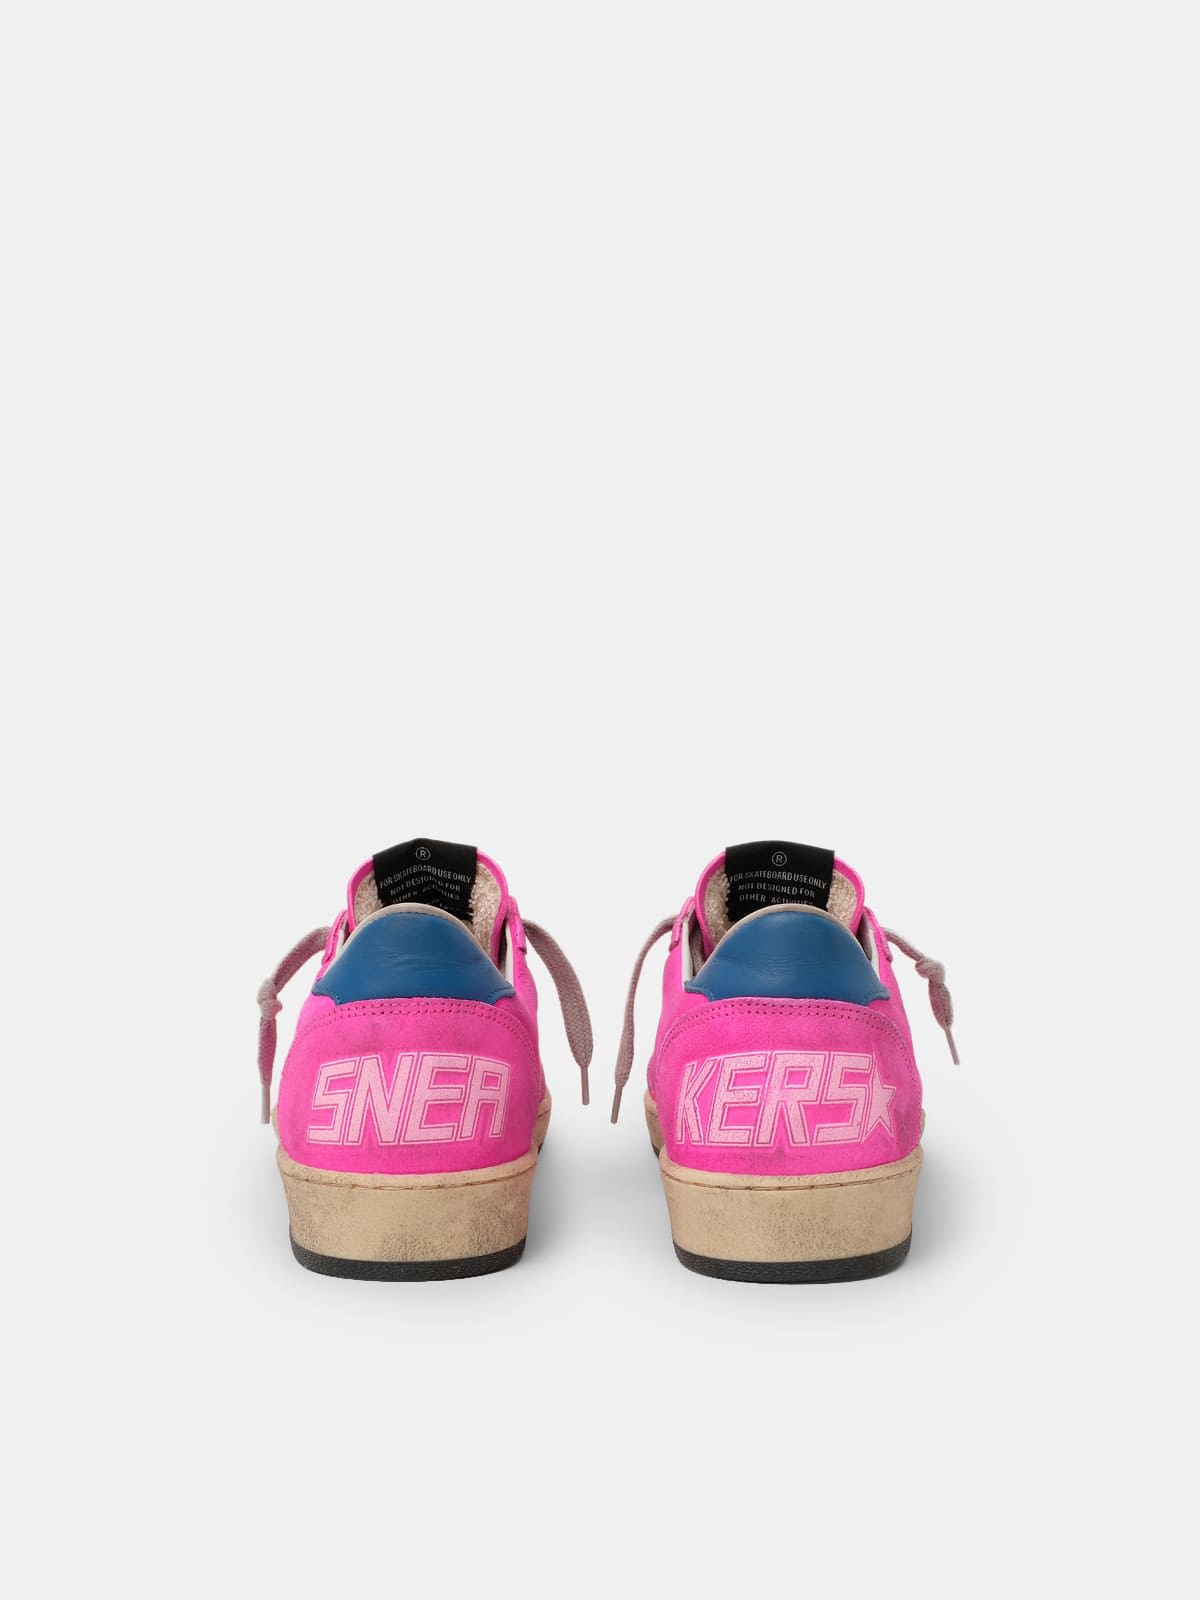 Ball Star sneakers in fuchsia leather with splashes of colour